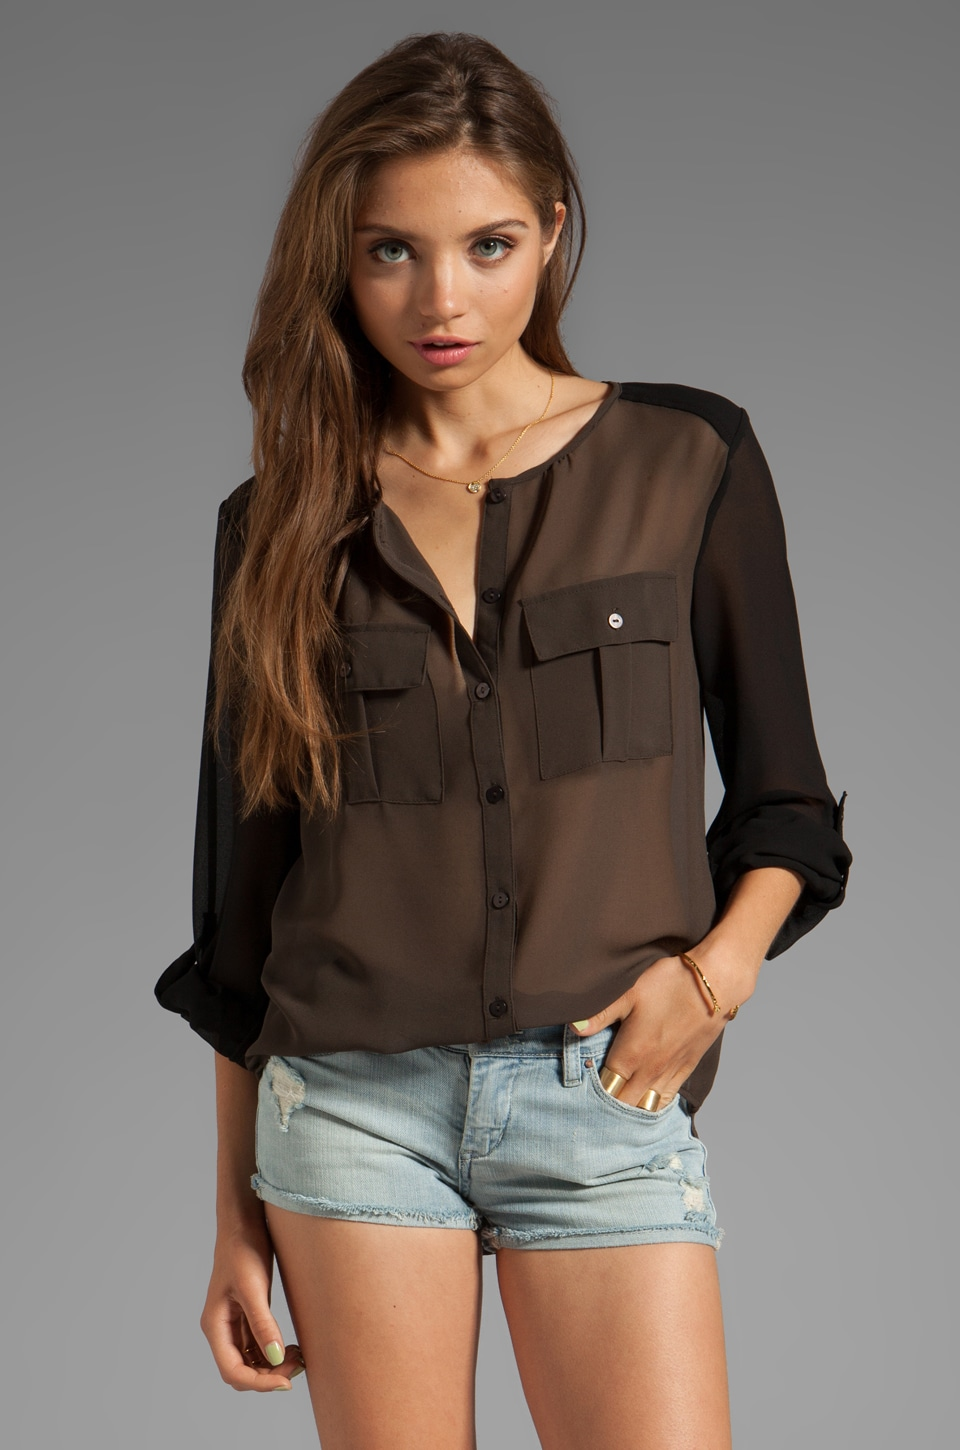 Sanctuary Soft Wovens Color Block Blouse in Olive